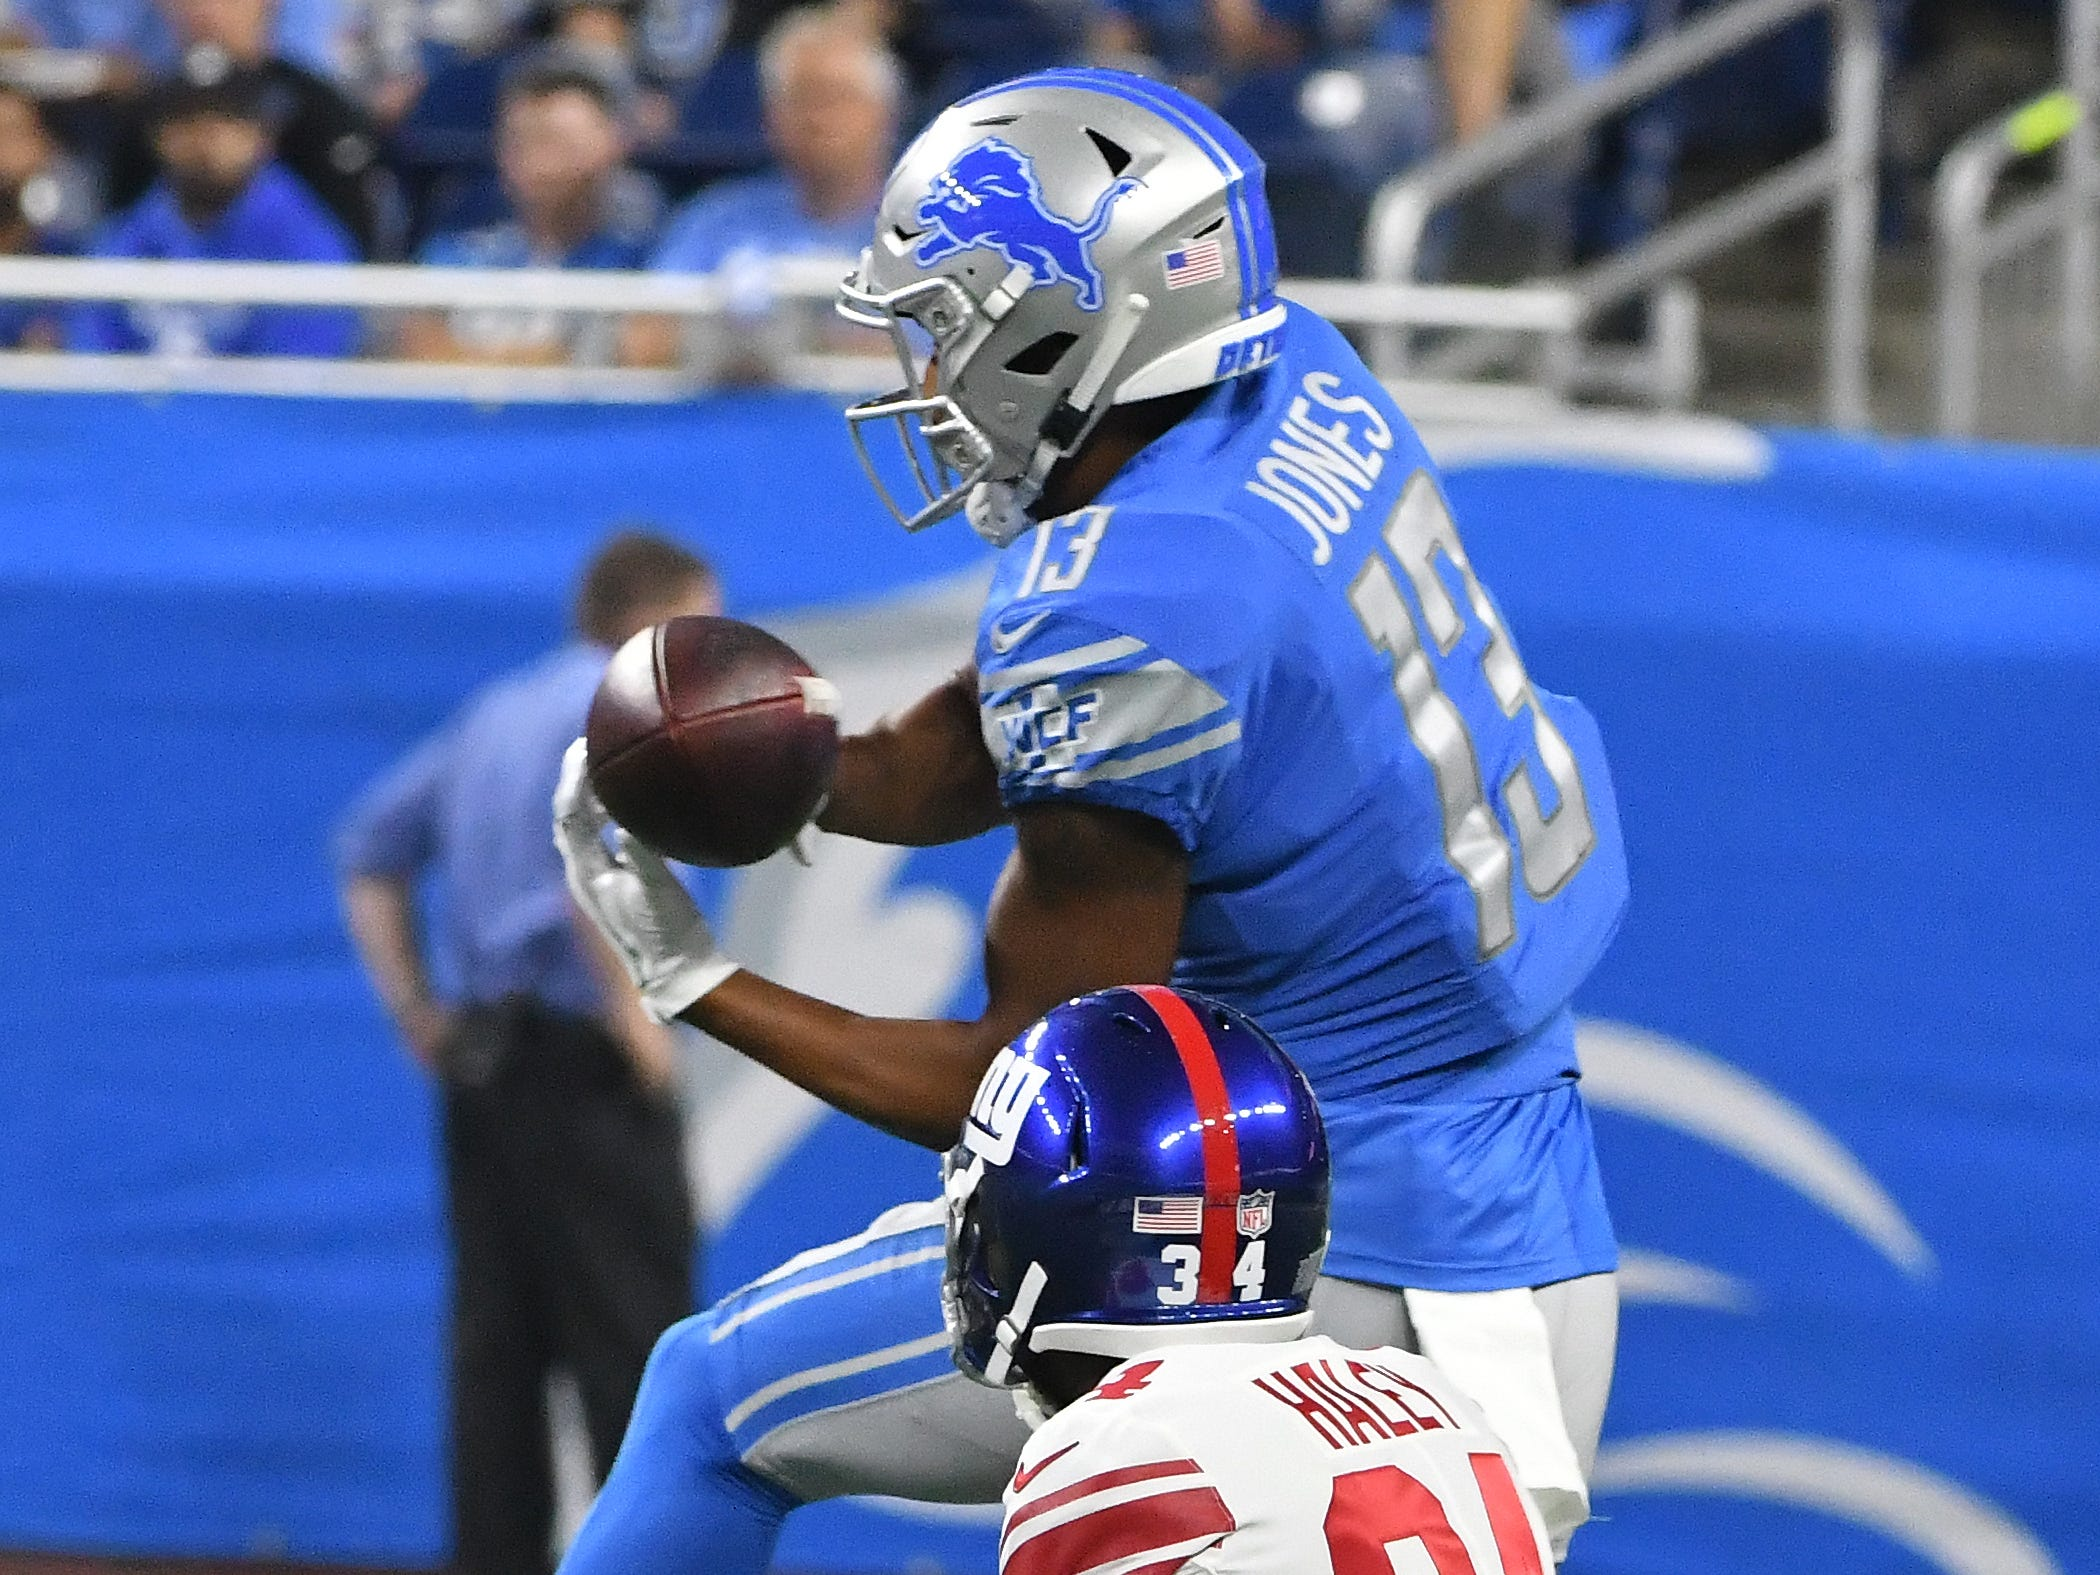 A pass slips past Lions wide receiver T.J. Jones hands, bounces off Giants' Grant Haley and into the hands of Giants' Ray-Ray Armstrong for an interception in the third quarter.